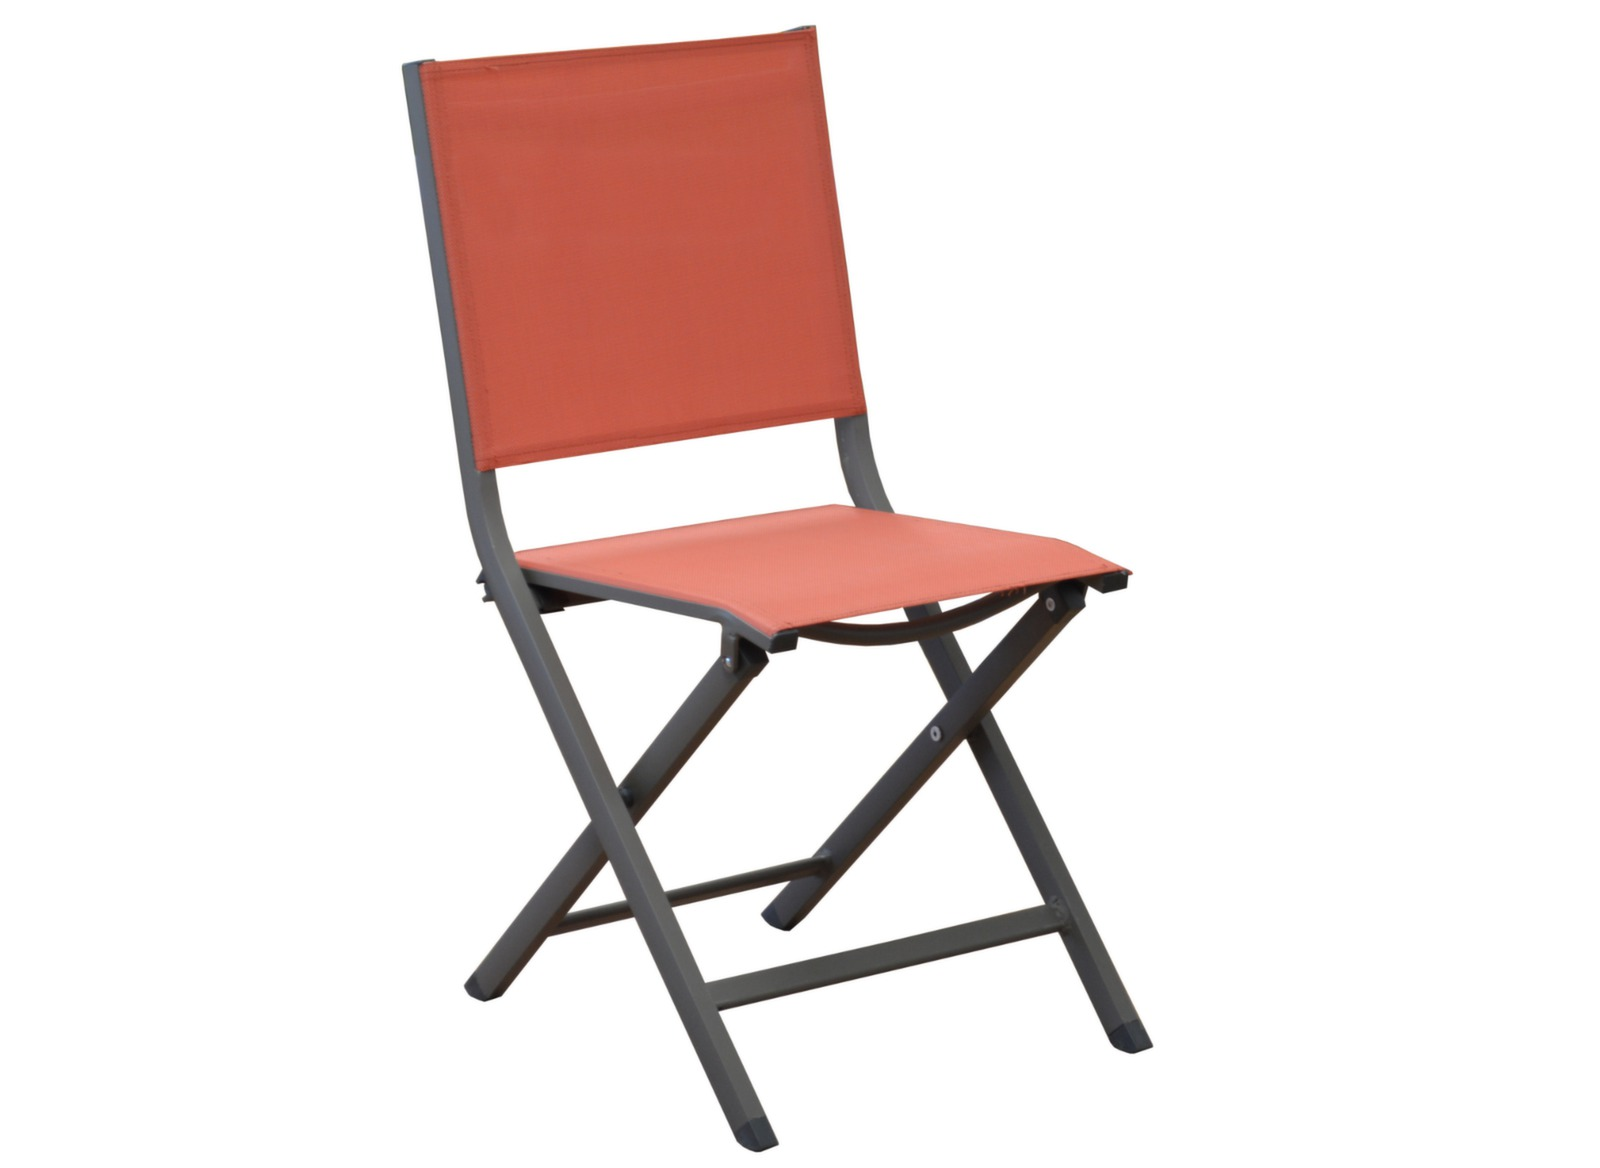 Salon jardin gu ridon 80cm 2 chaises pliantes proloisirs for Chaise pliante